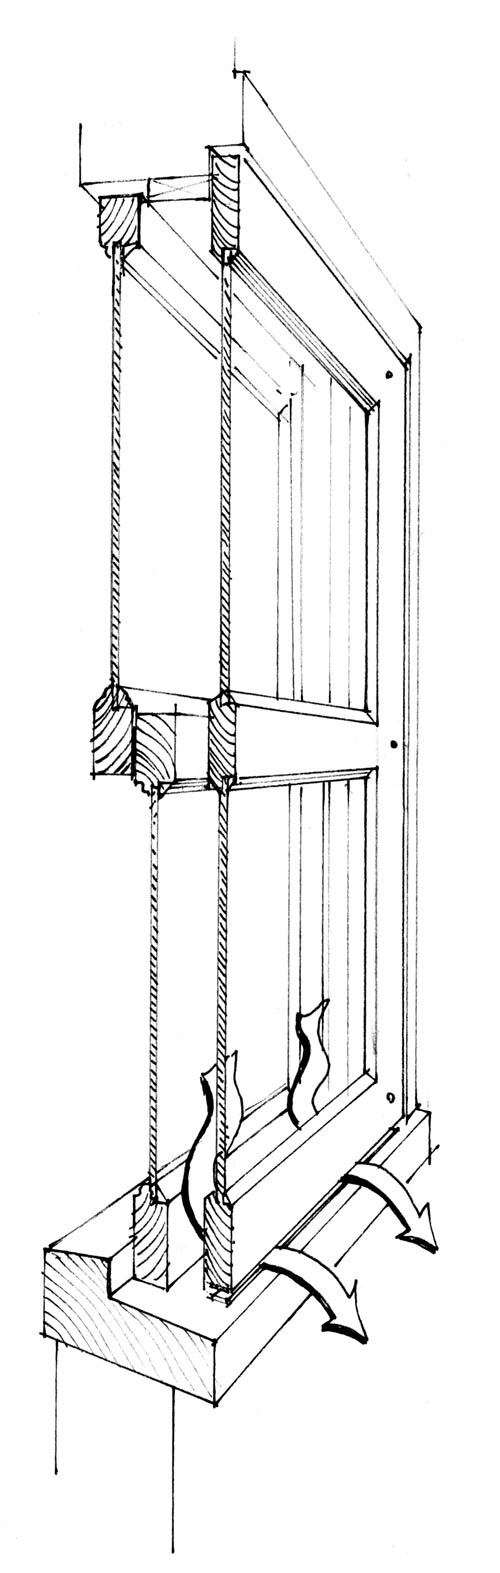 Storm windows should not form an airtight seal but, instead, incorporate weep holes or be raised on lead shims to let moisture escape.